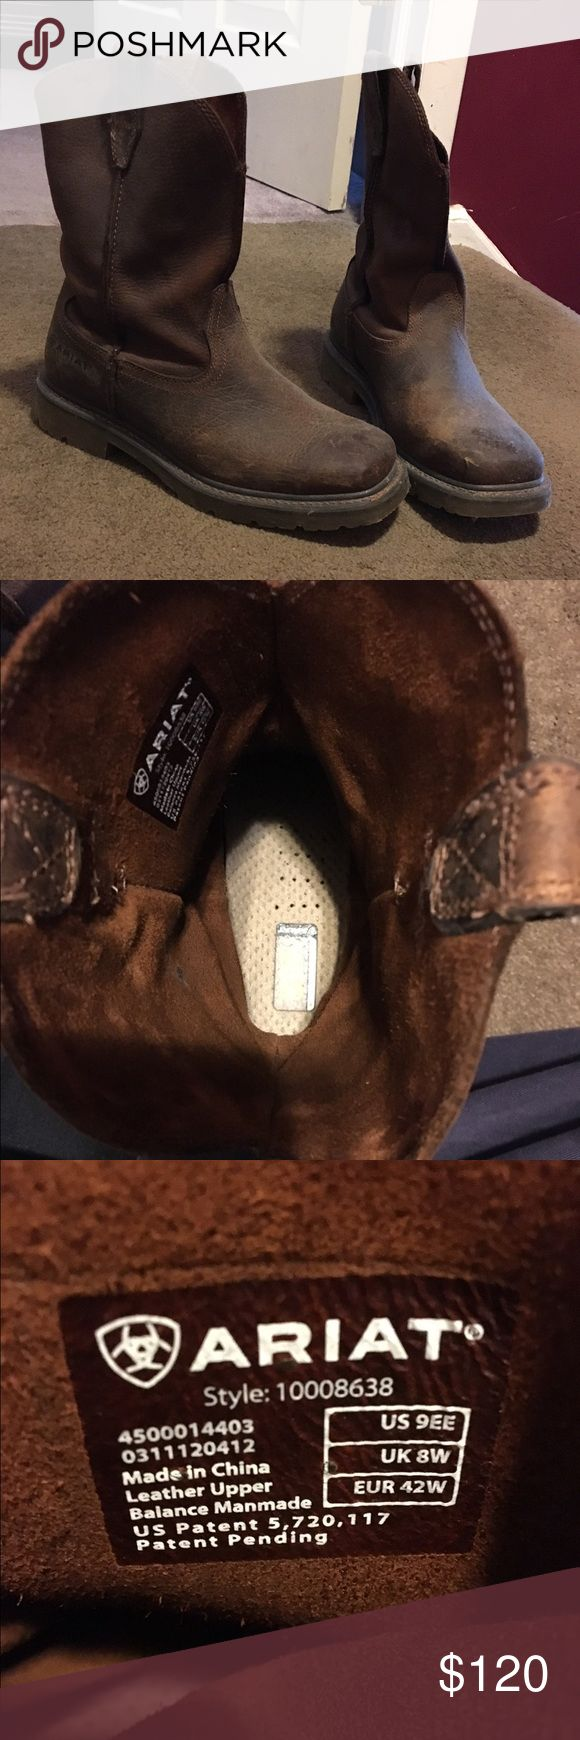 NWOT Ariat men's work boot Ariat rambler work edition size 9 in men's. Brown leather. Never worn, brand new! Ariat Shoes Boots